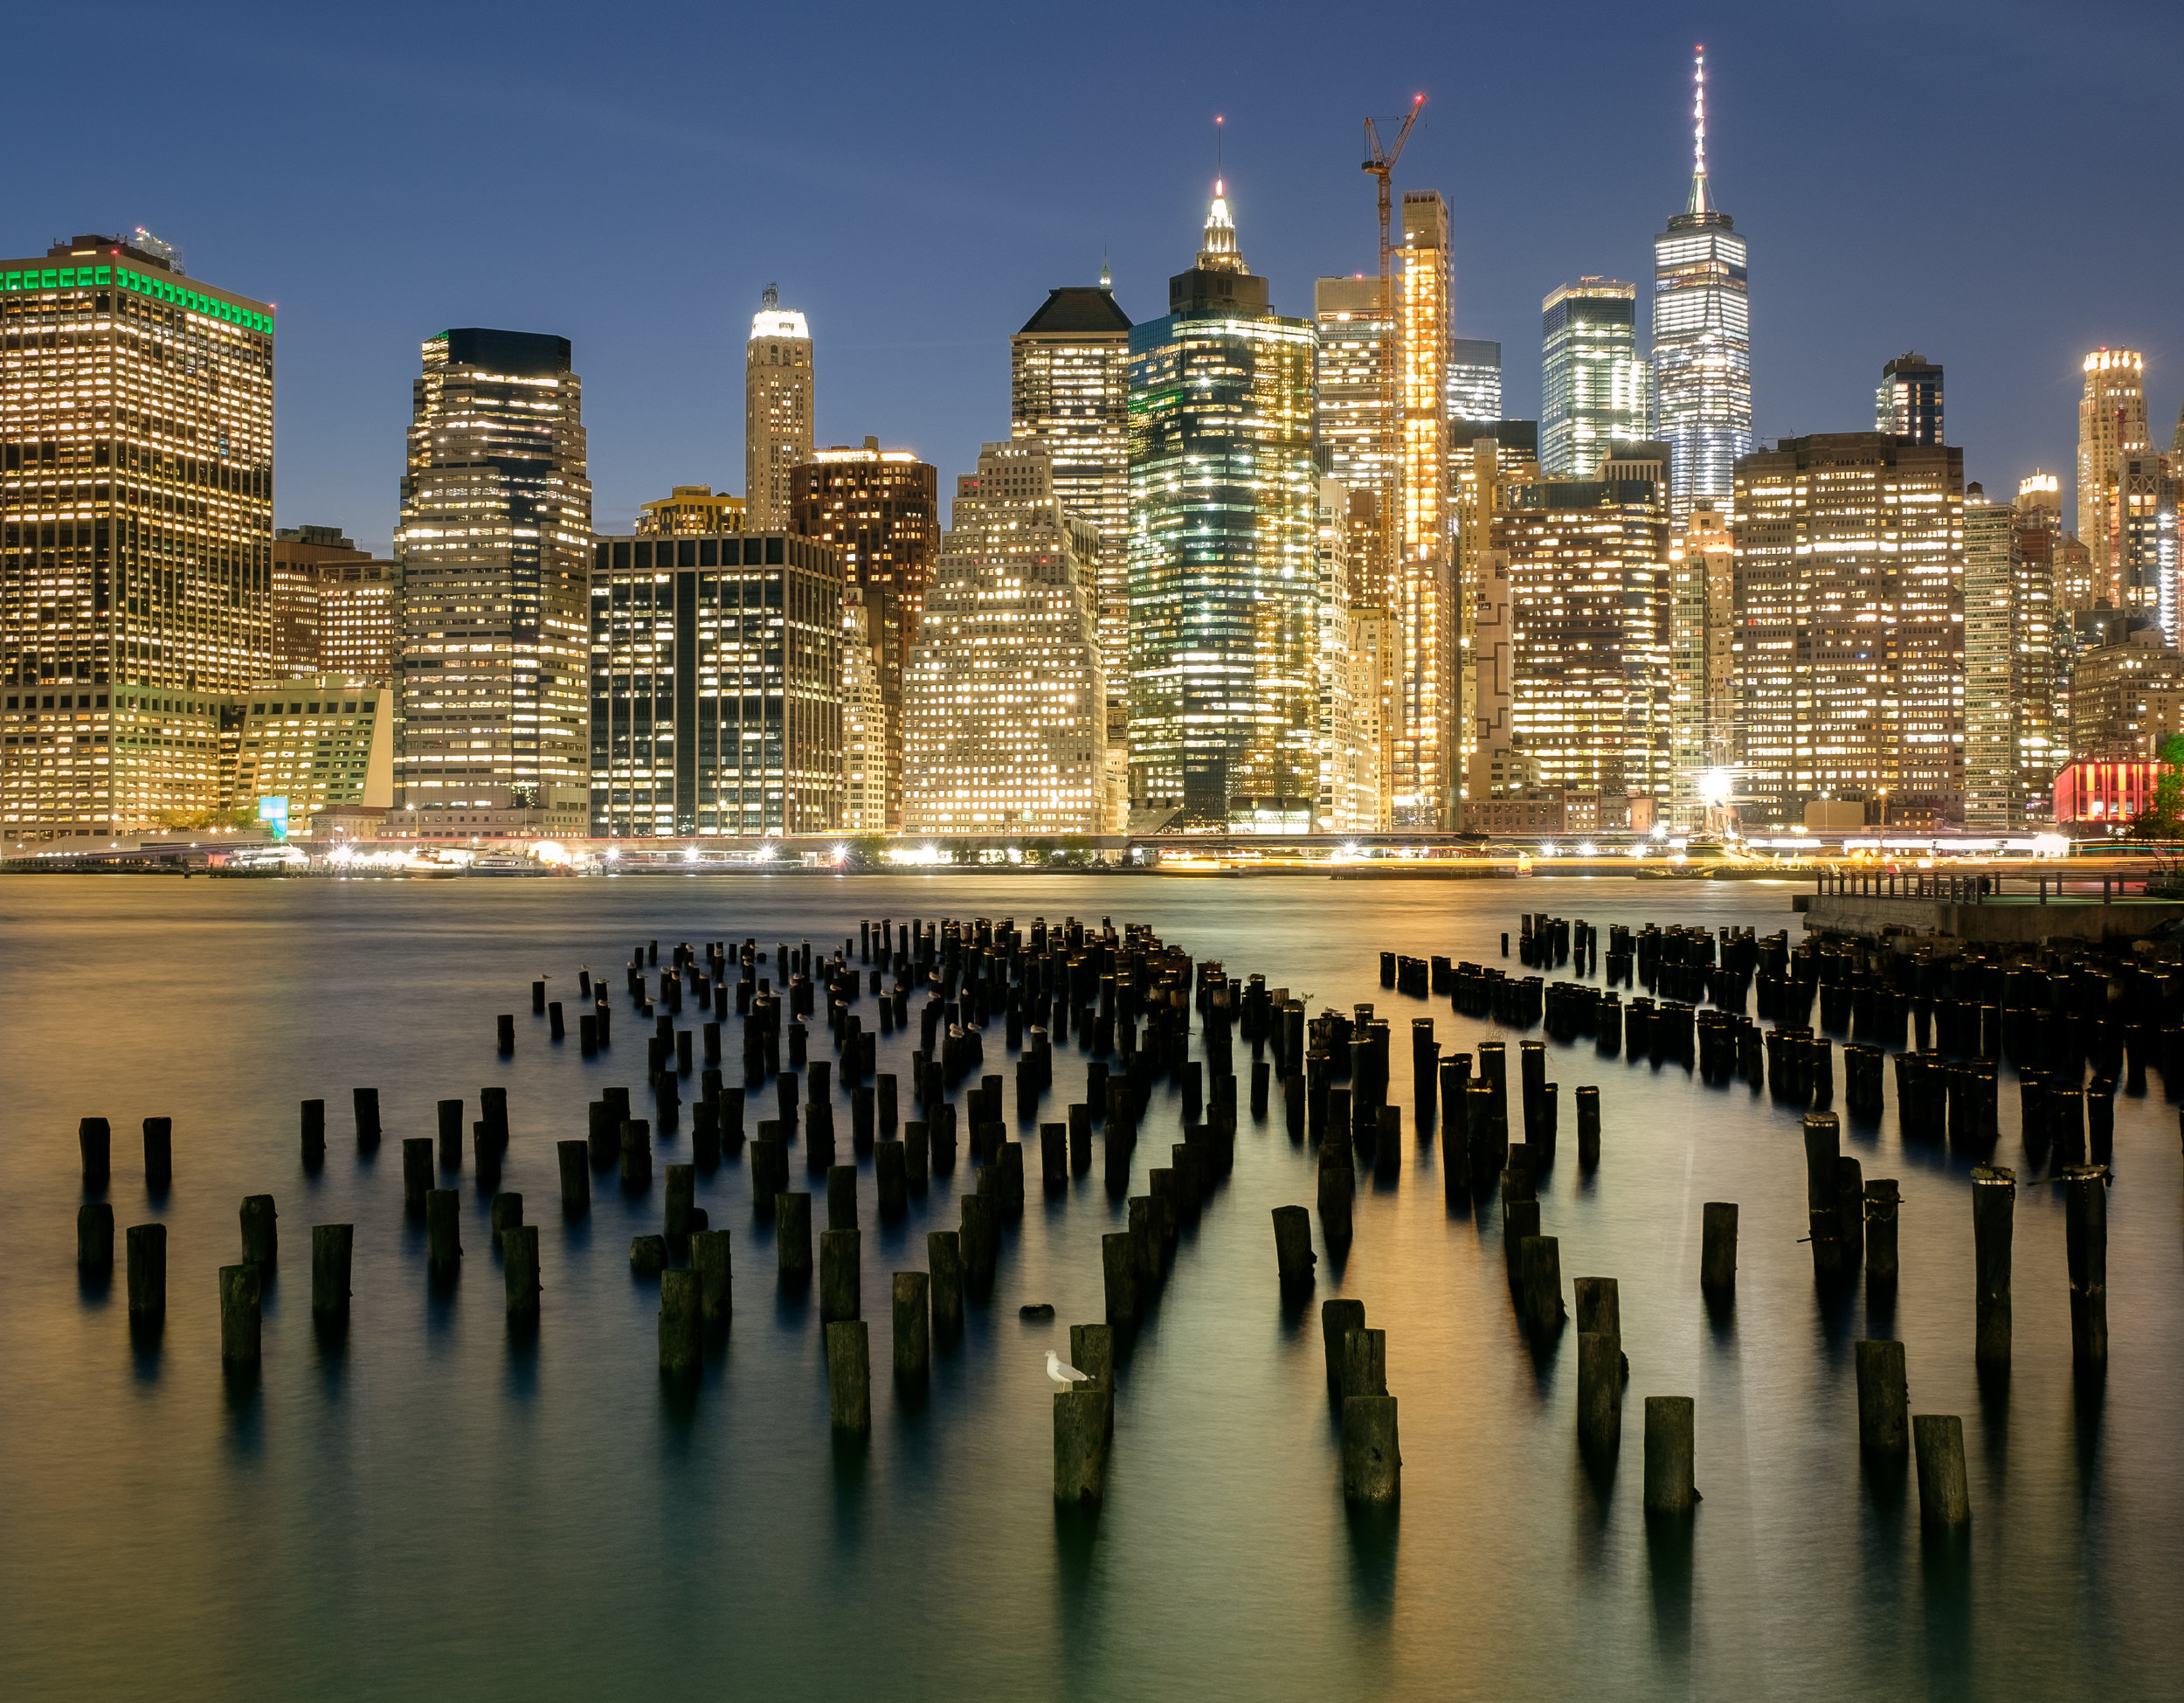 Lower Manhattan skyline from Brooklyn.    Fuji X-T2   ,    16-55mm f/2.8    at 21mm. 25 seconds, f/6.4, ISO 200.